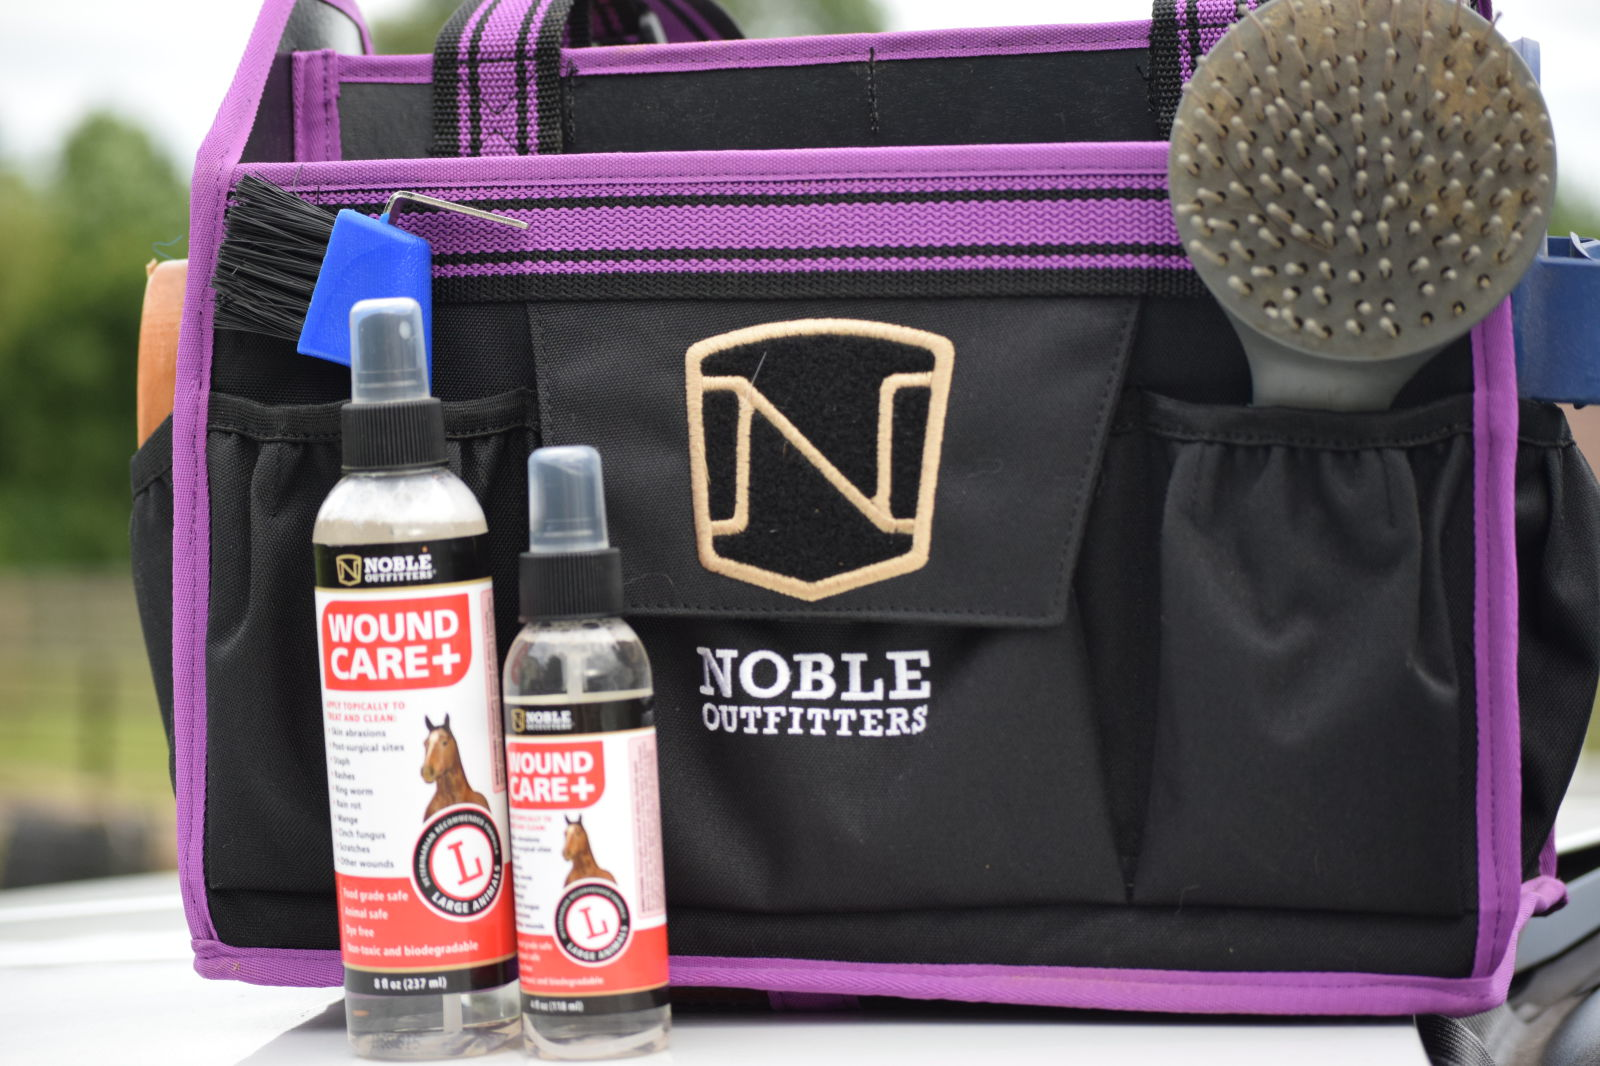 Product Review: Wound Care+ from Noble Outfitters | Eventing